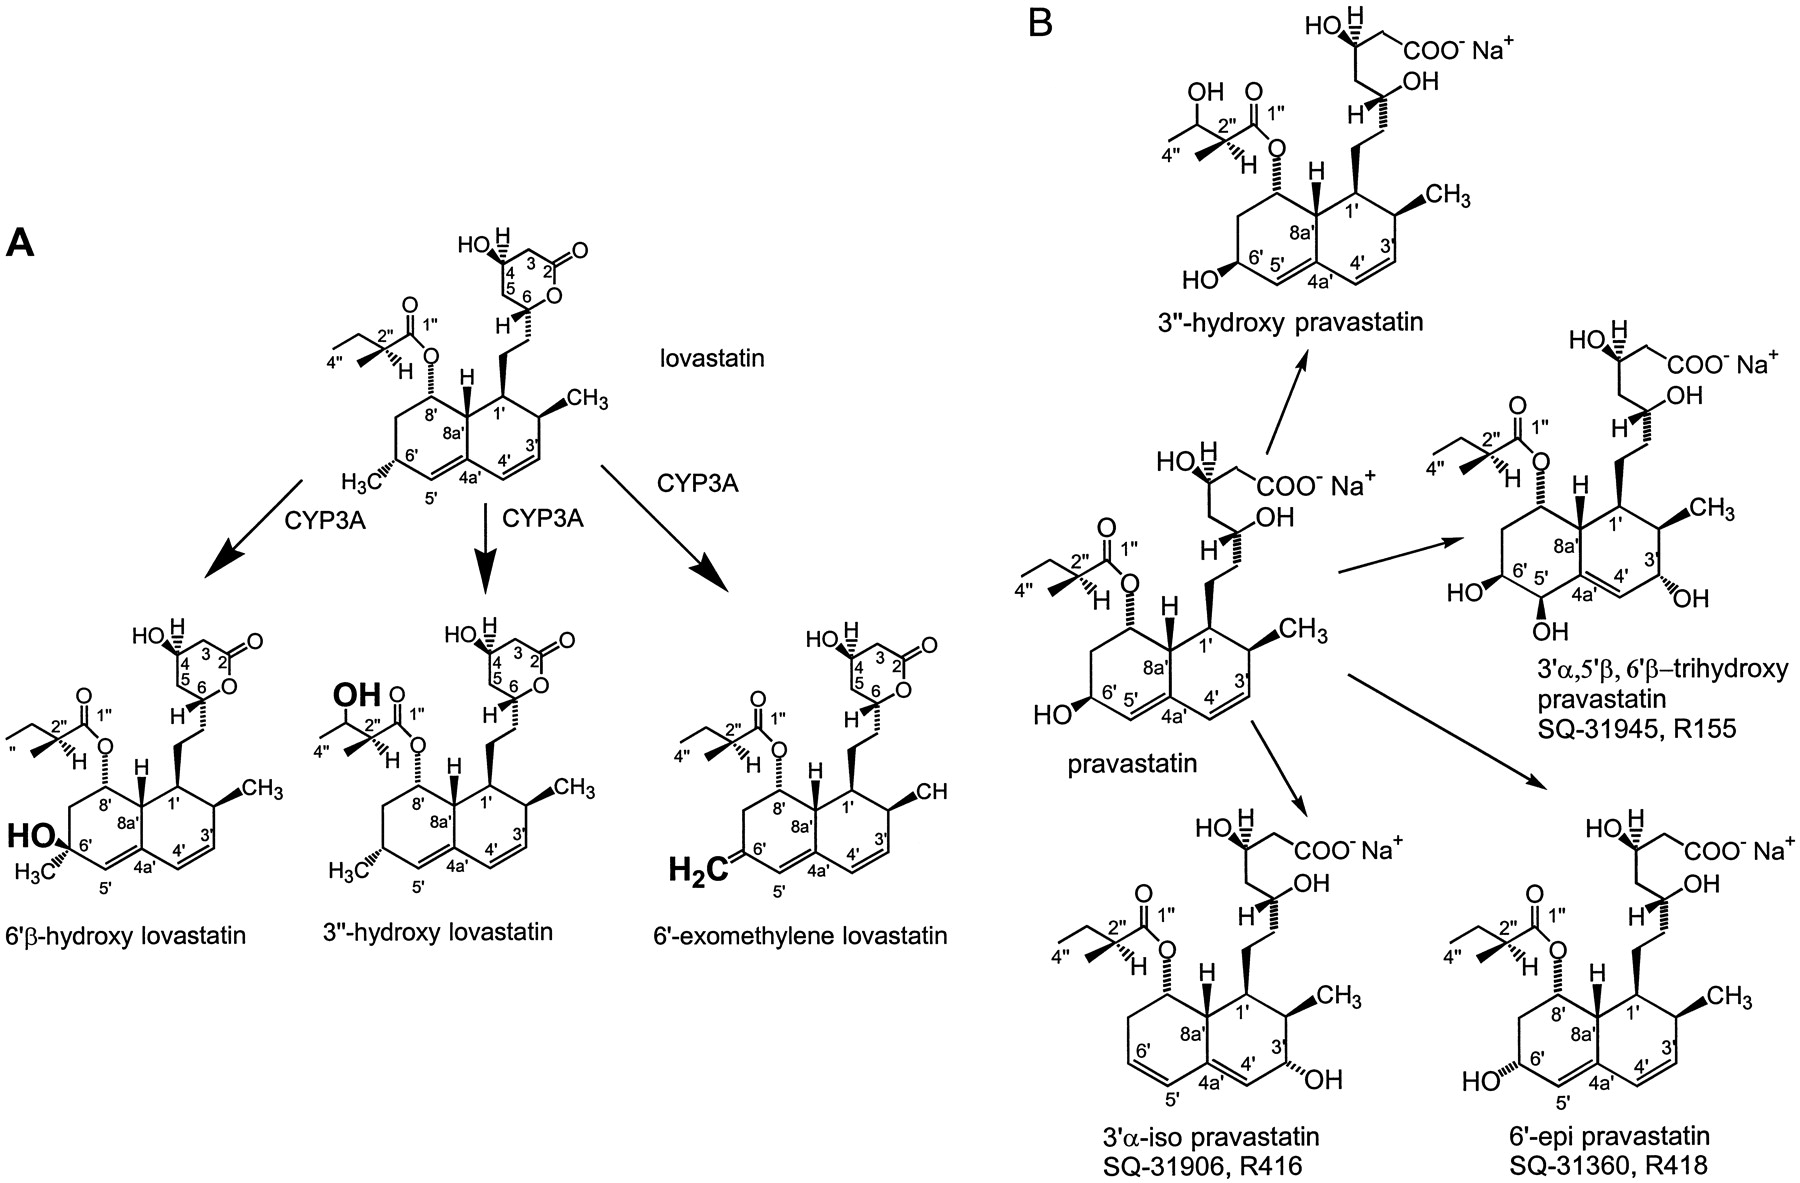 Comparison of Cytochrome P-450-Dependent Metabolism and